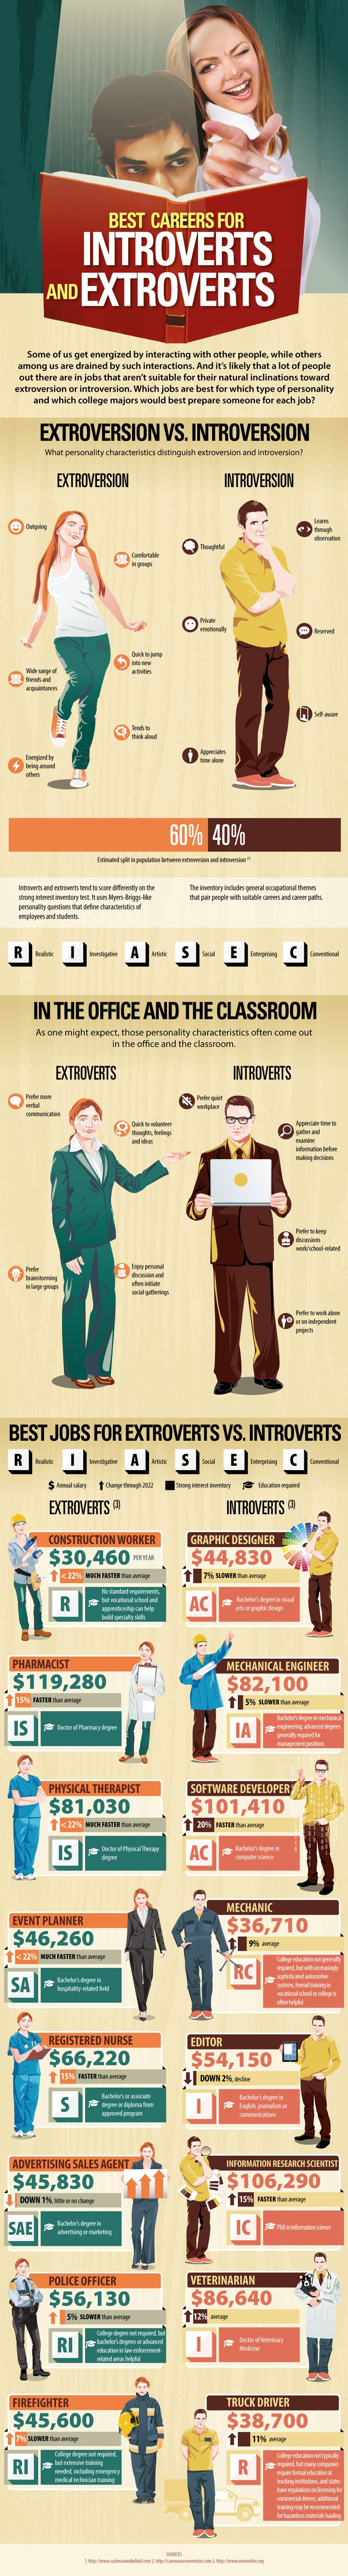 best ideas about career assessment test introverted versus extroverted personalities interest inventory career infographic careerassessmentsite com